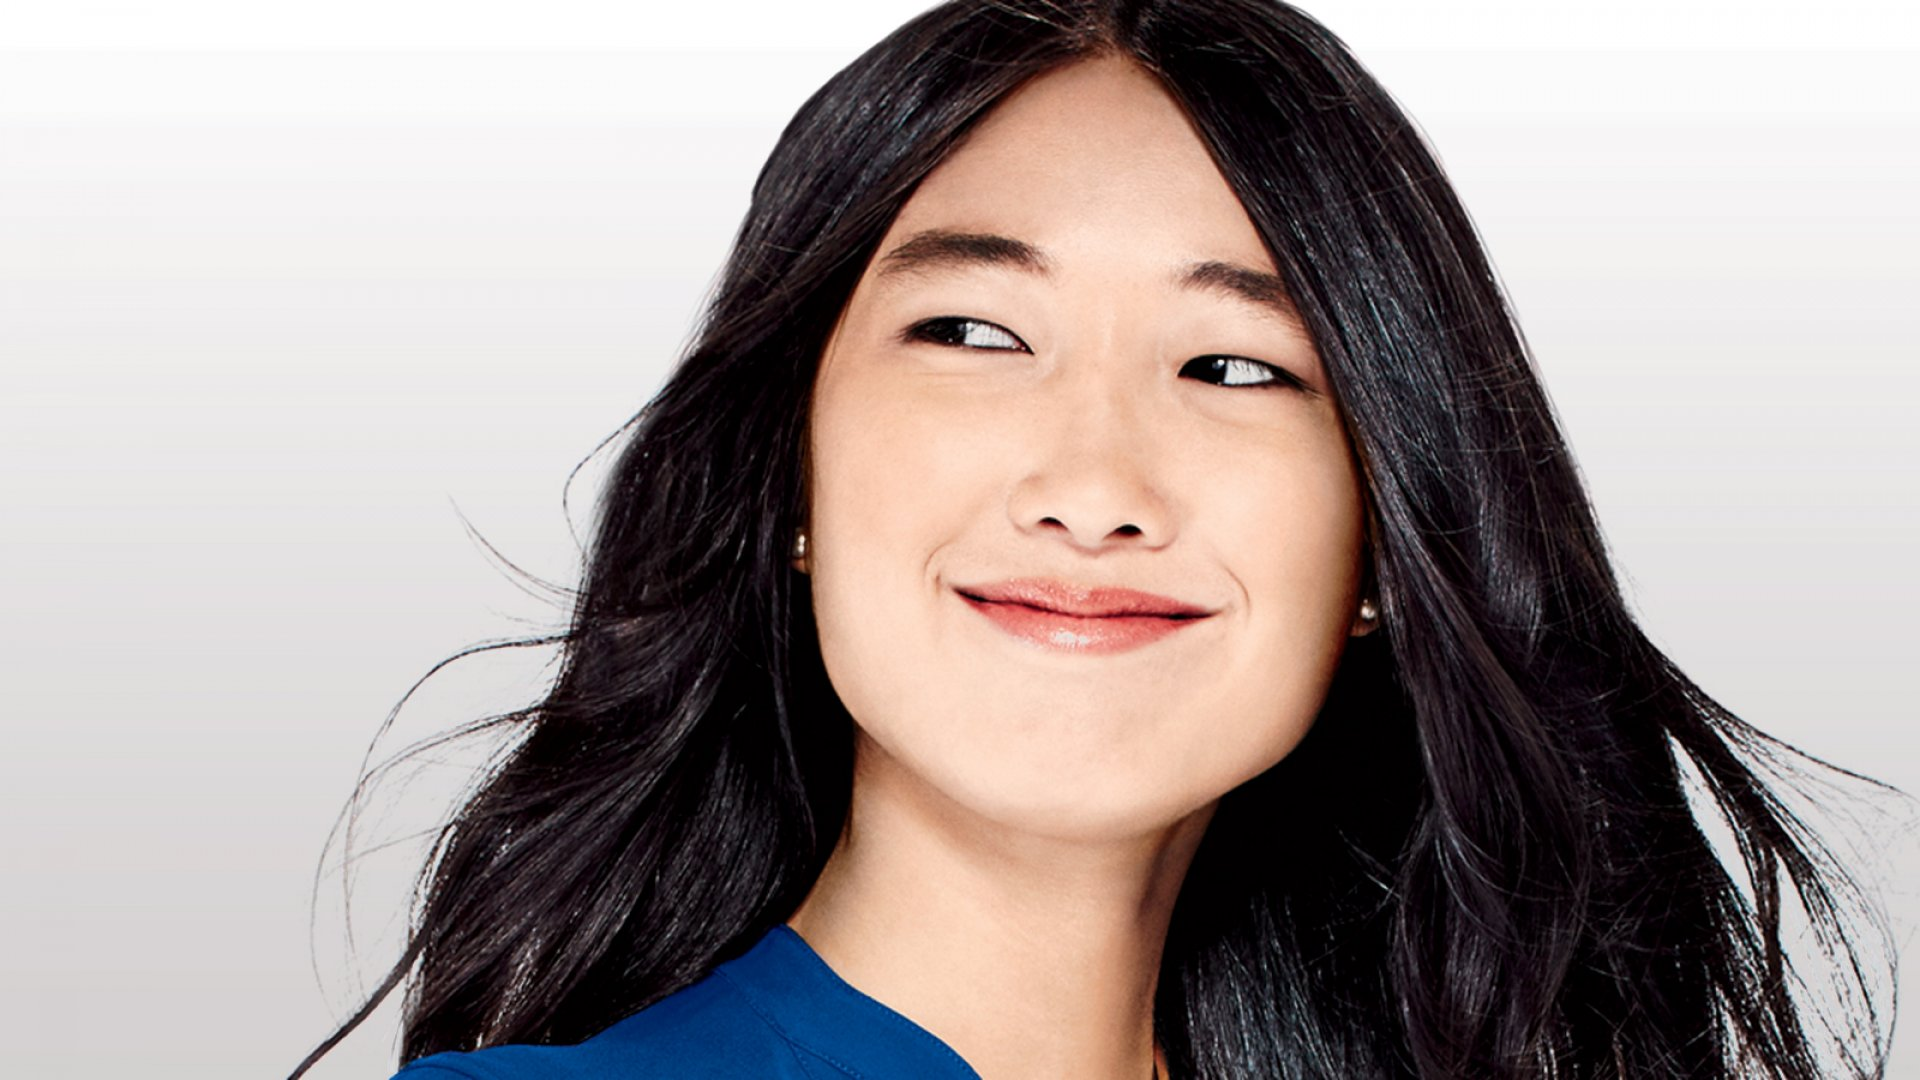 Jessica Mah reinvented her financial software firm, inDinero, to create a stunning growth rate of 2,685.6 percent over the past three years.